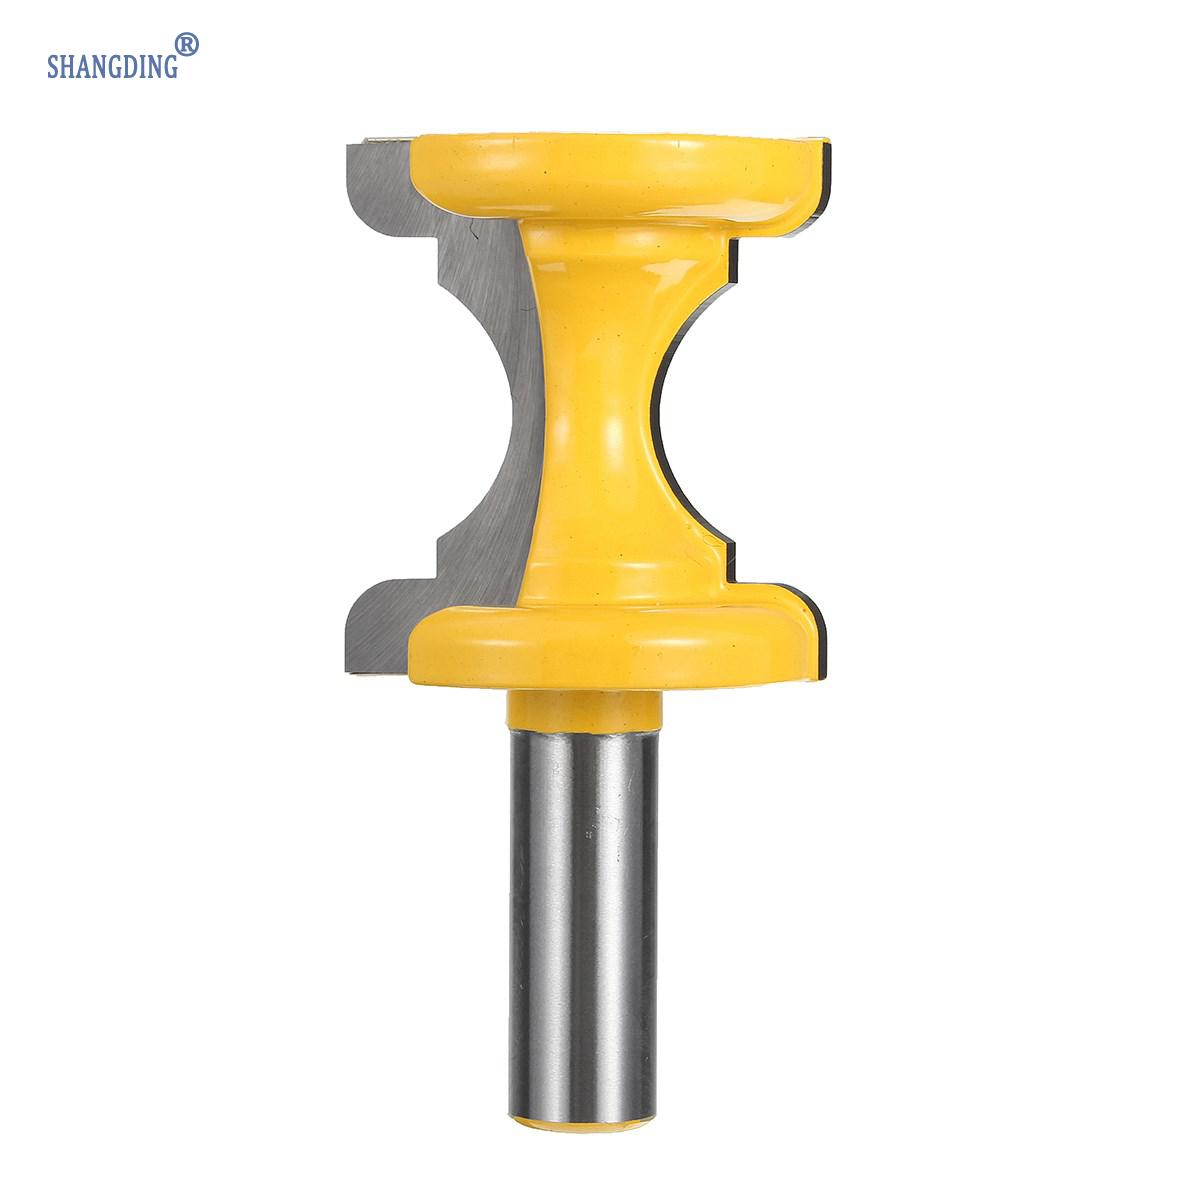 Woodworking Cutting Tool 1PCS 1/2 inch Shank Concave Nose Type 1Bullnose with Bead Column Face Molding Router Bit For Wood 1 2 shank bullnose bead column face molding router bit alloy woodworking cutter for wood milling machines power tool